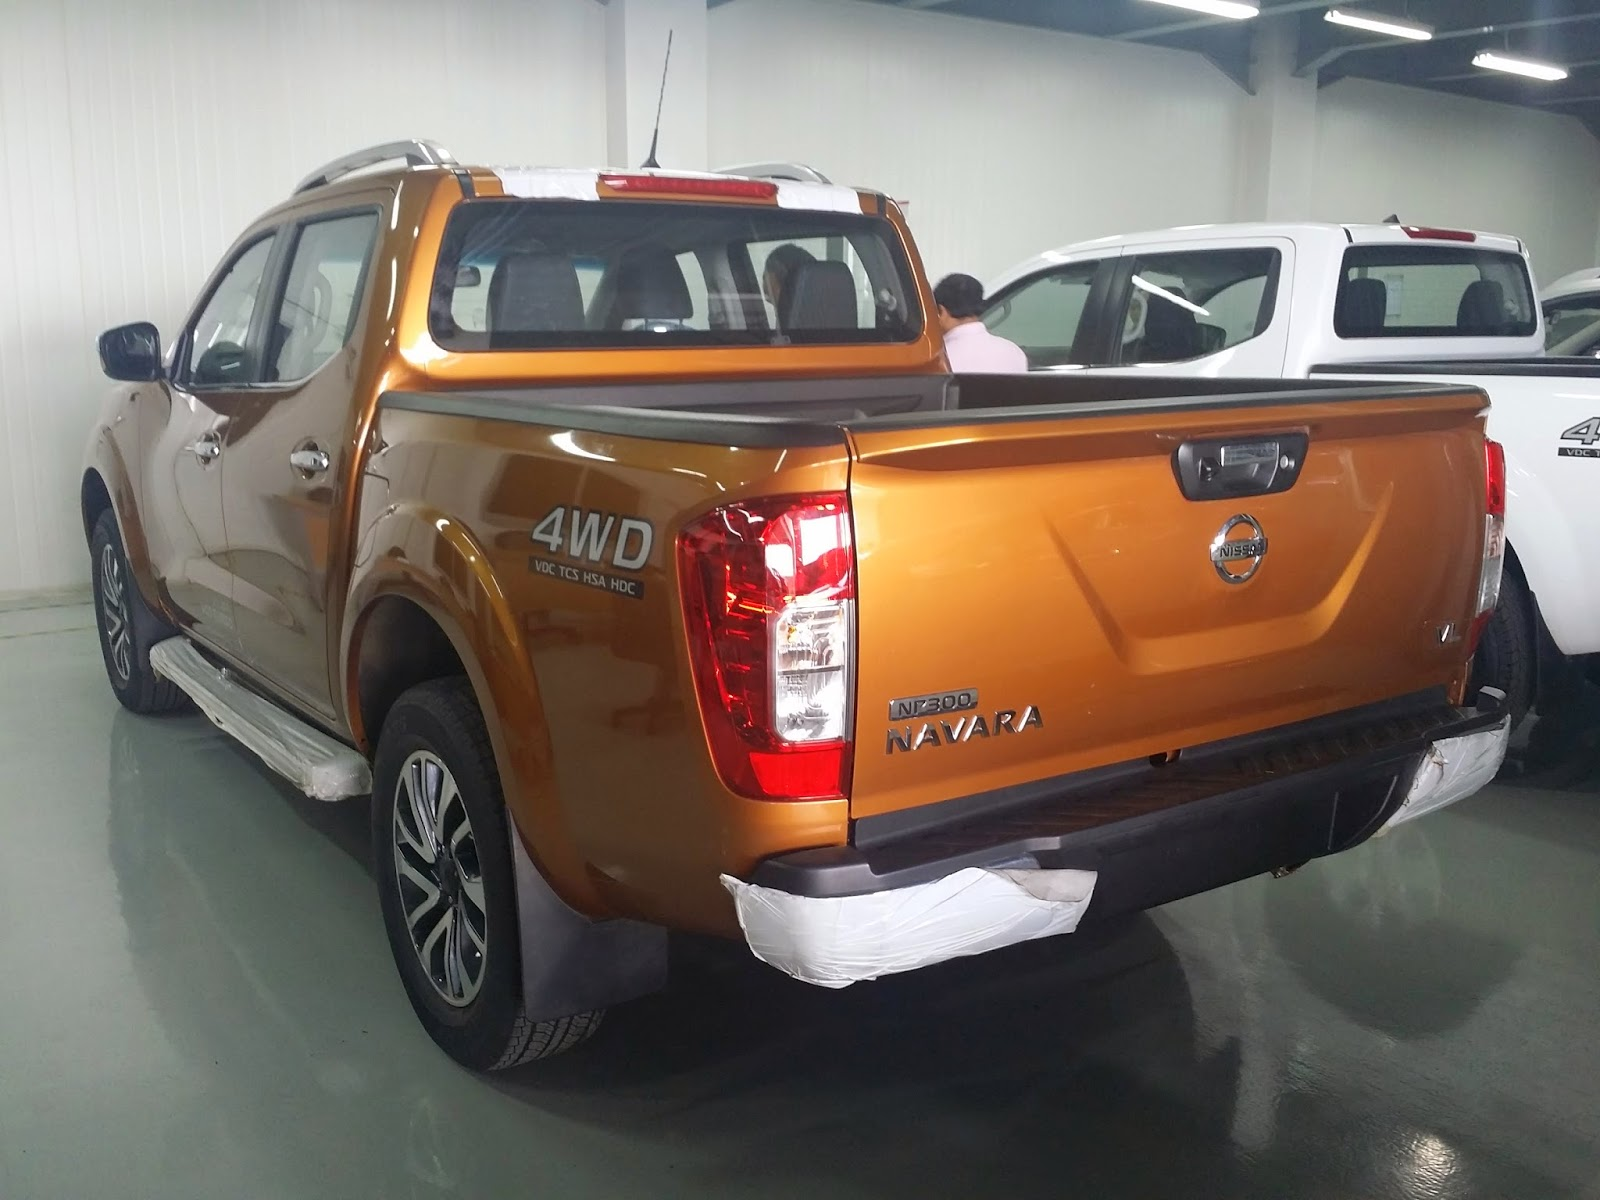 ALL NEW NISSAN NP300 NAVARA VL WARNA ORANGE